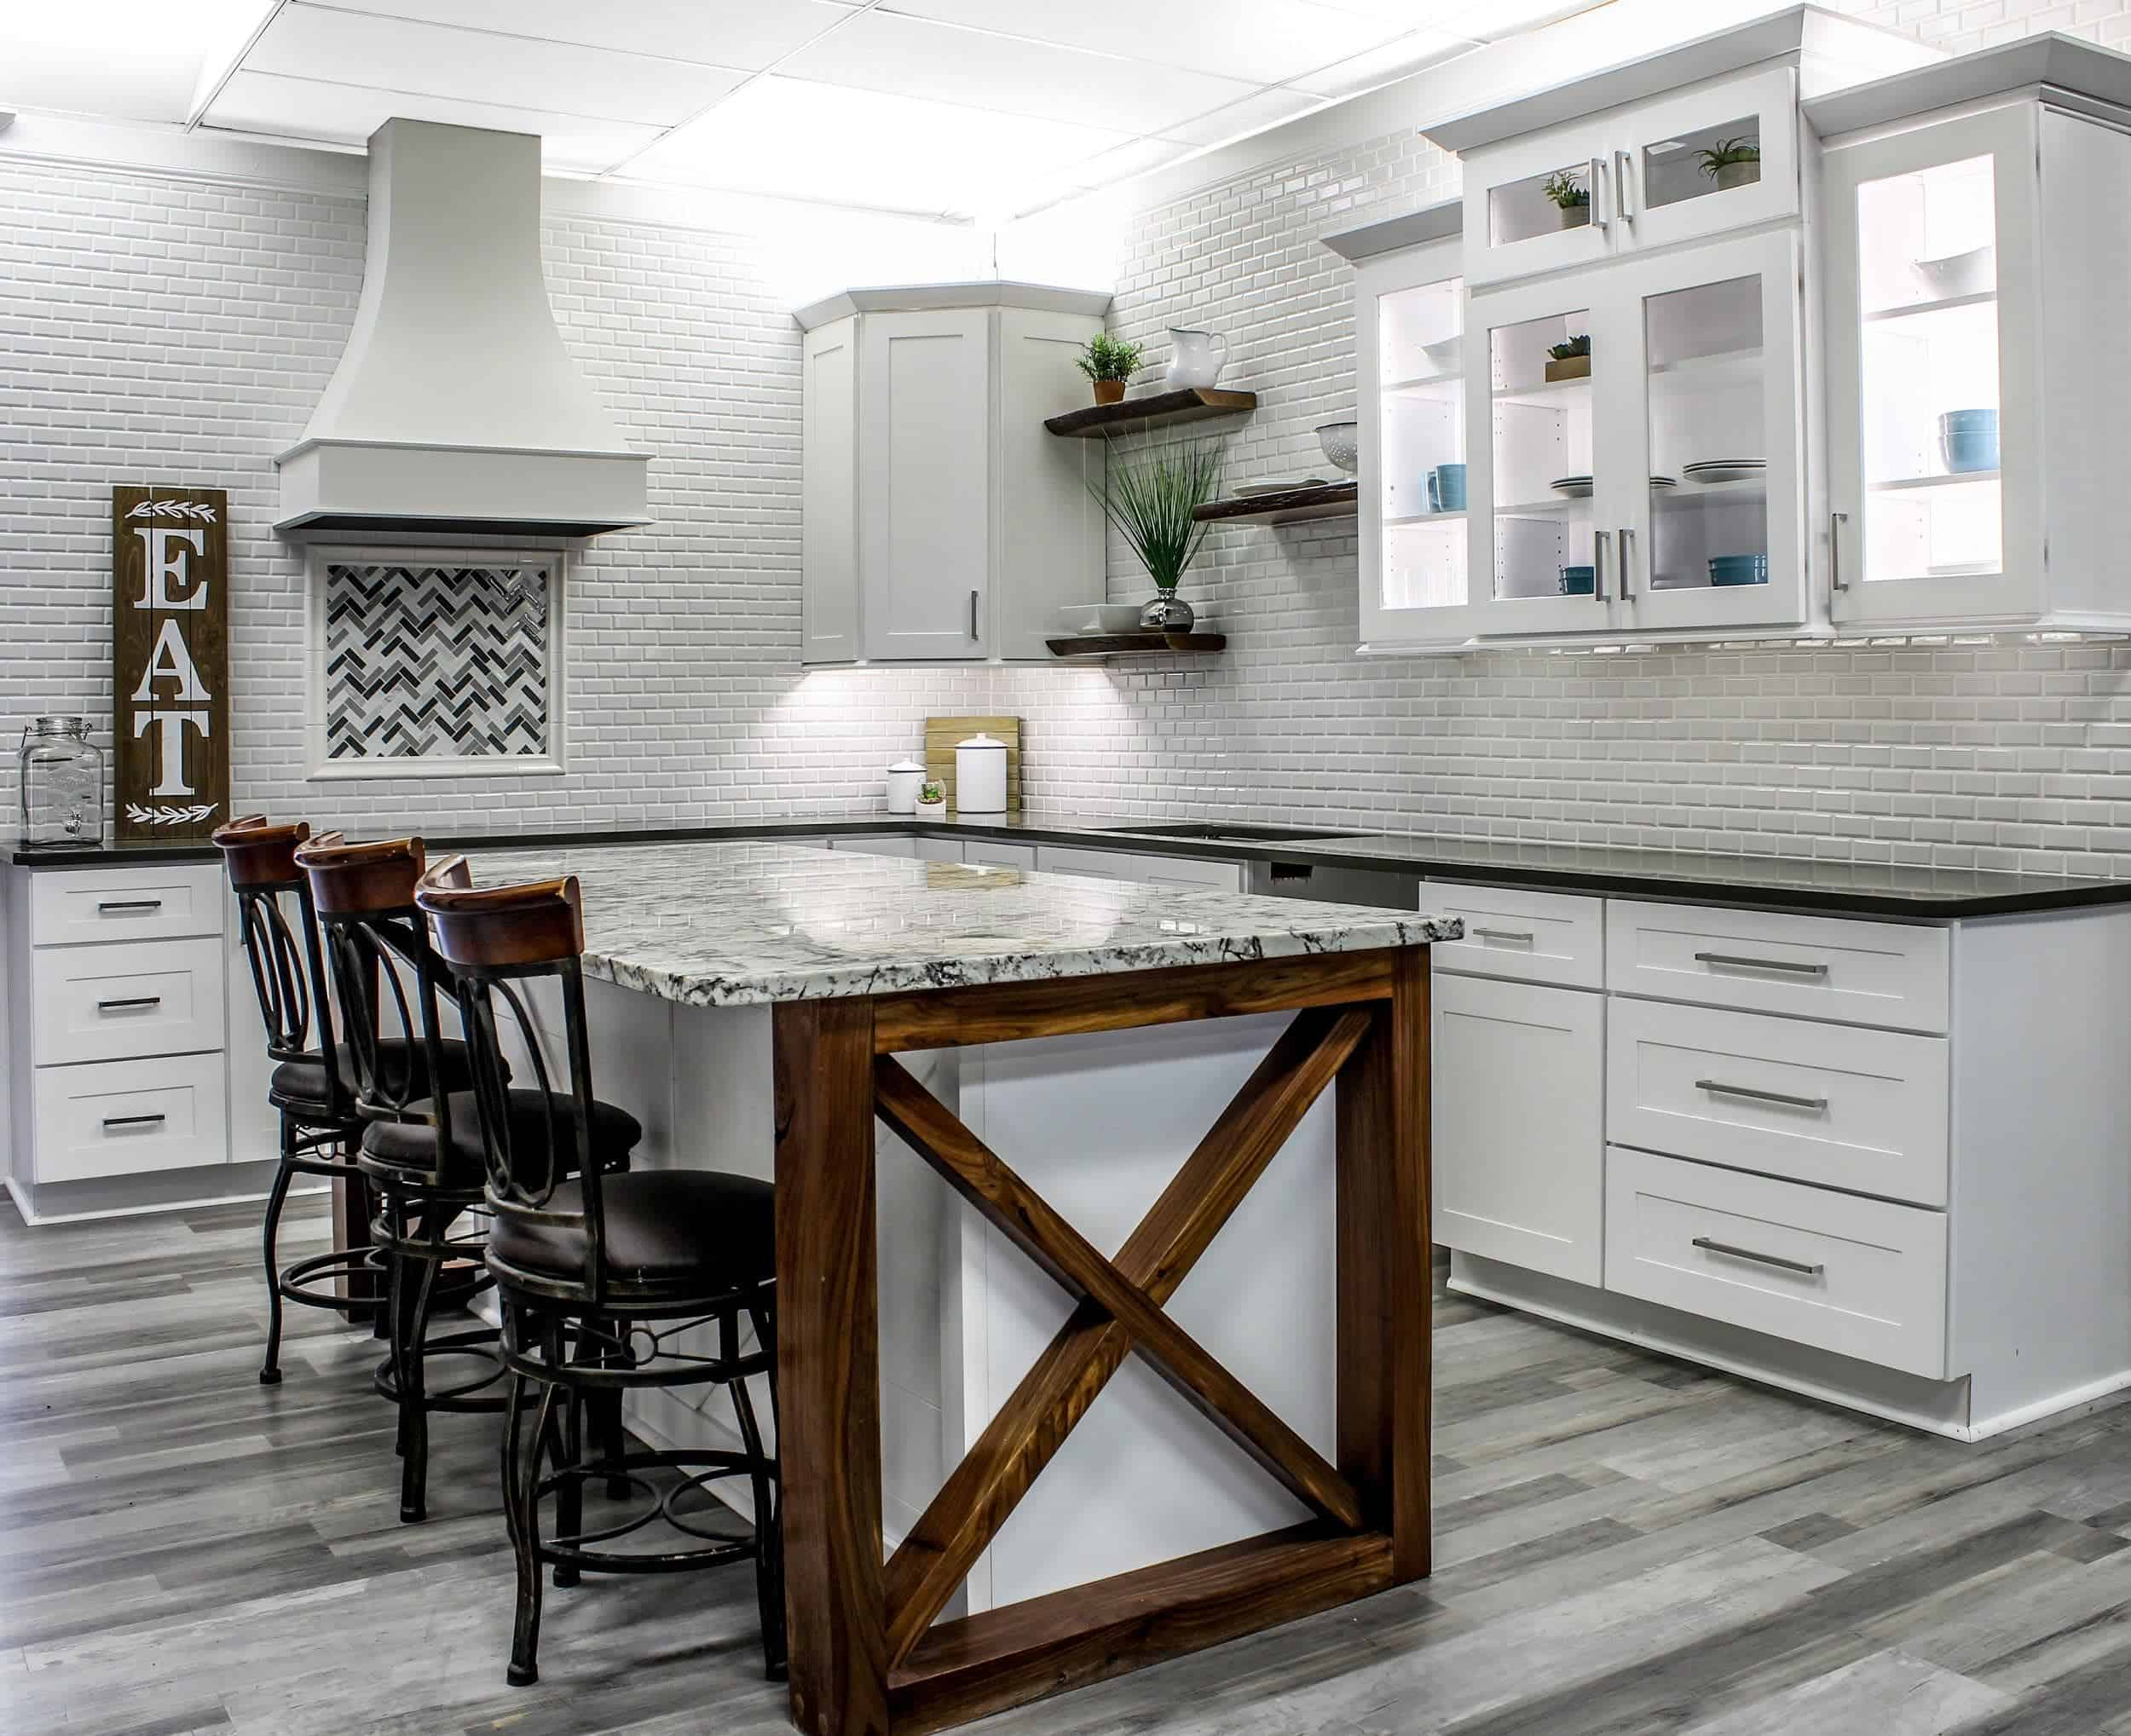 This is a bright and spacious kitchen due to its white shaker cabinets that are fitted with brilliant backlights paired with white backsplash tiles arranged in a brick wall pattern.